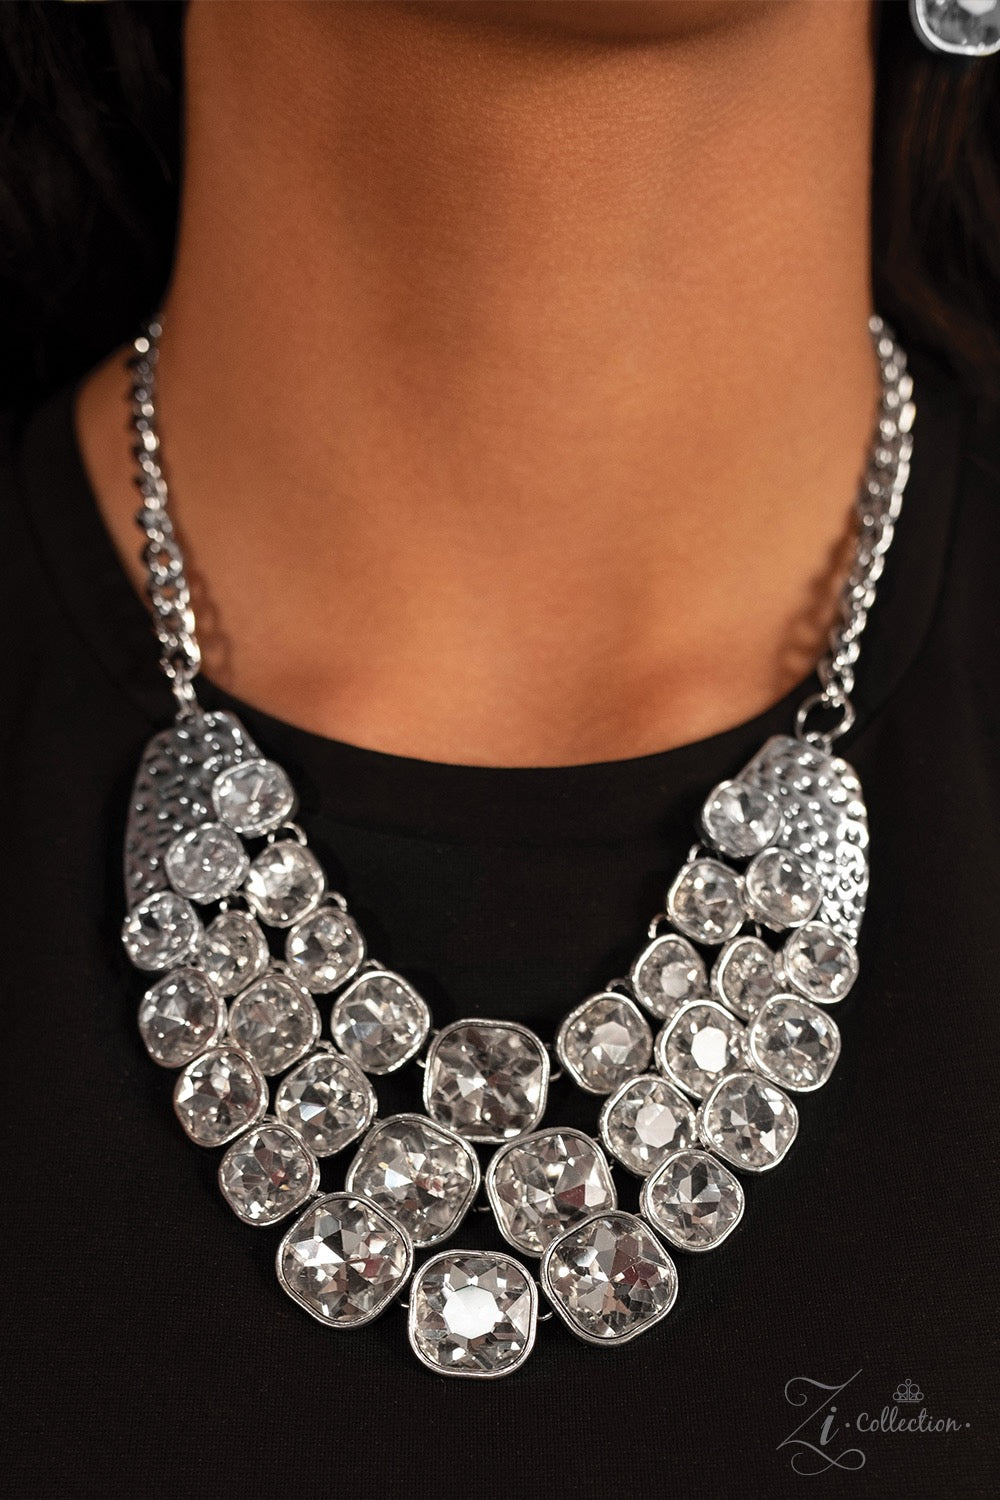 Unstoppable - Zi Collection Necklace